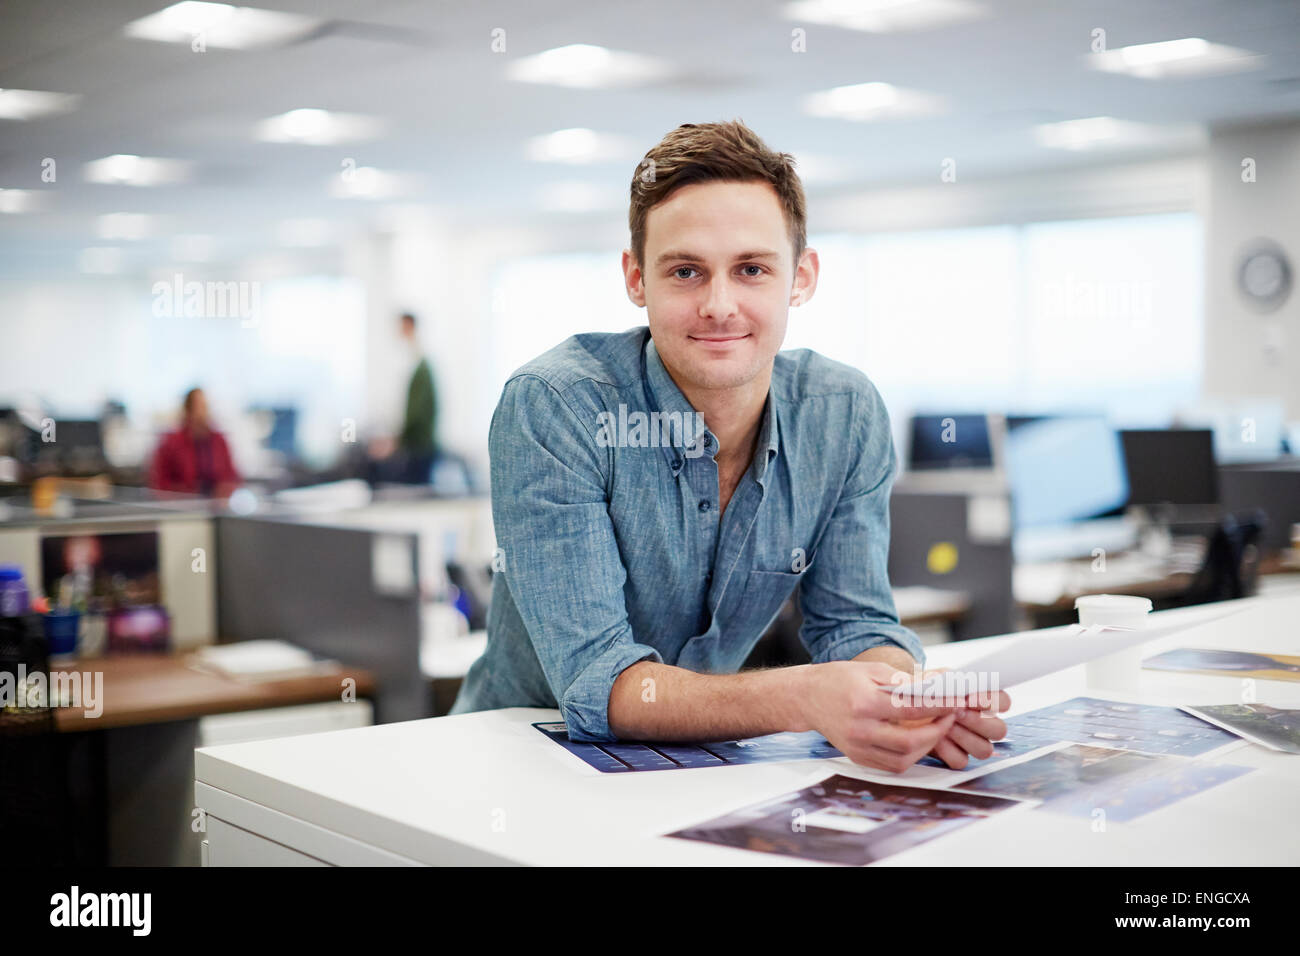 A man smiling and leaning forward on his desk. - Stock Image